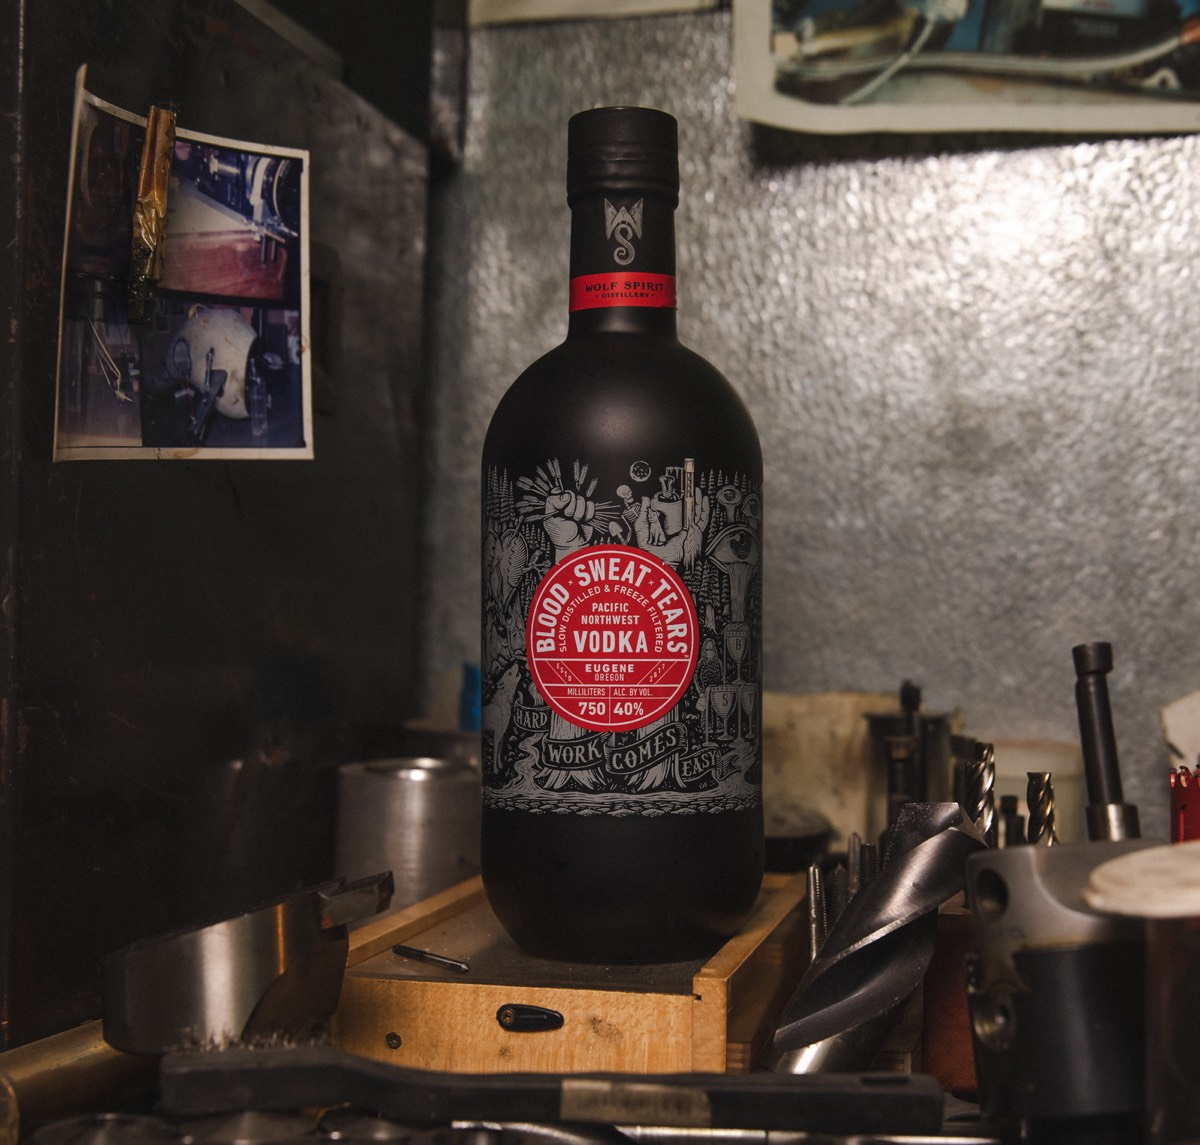 Oregon-based Wolf Spirit has launched Blood x Sweat x Tears vodka